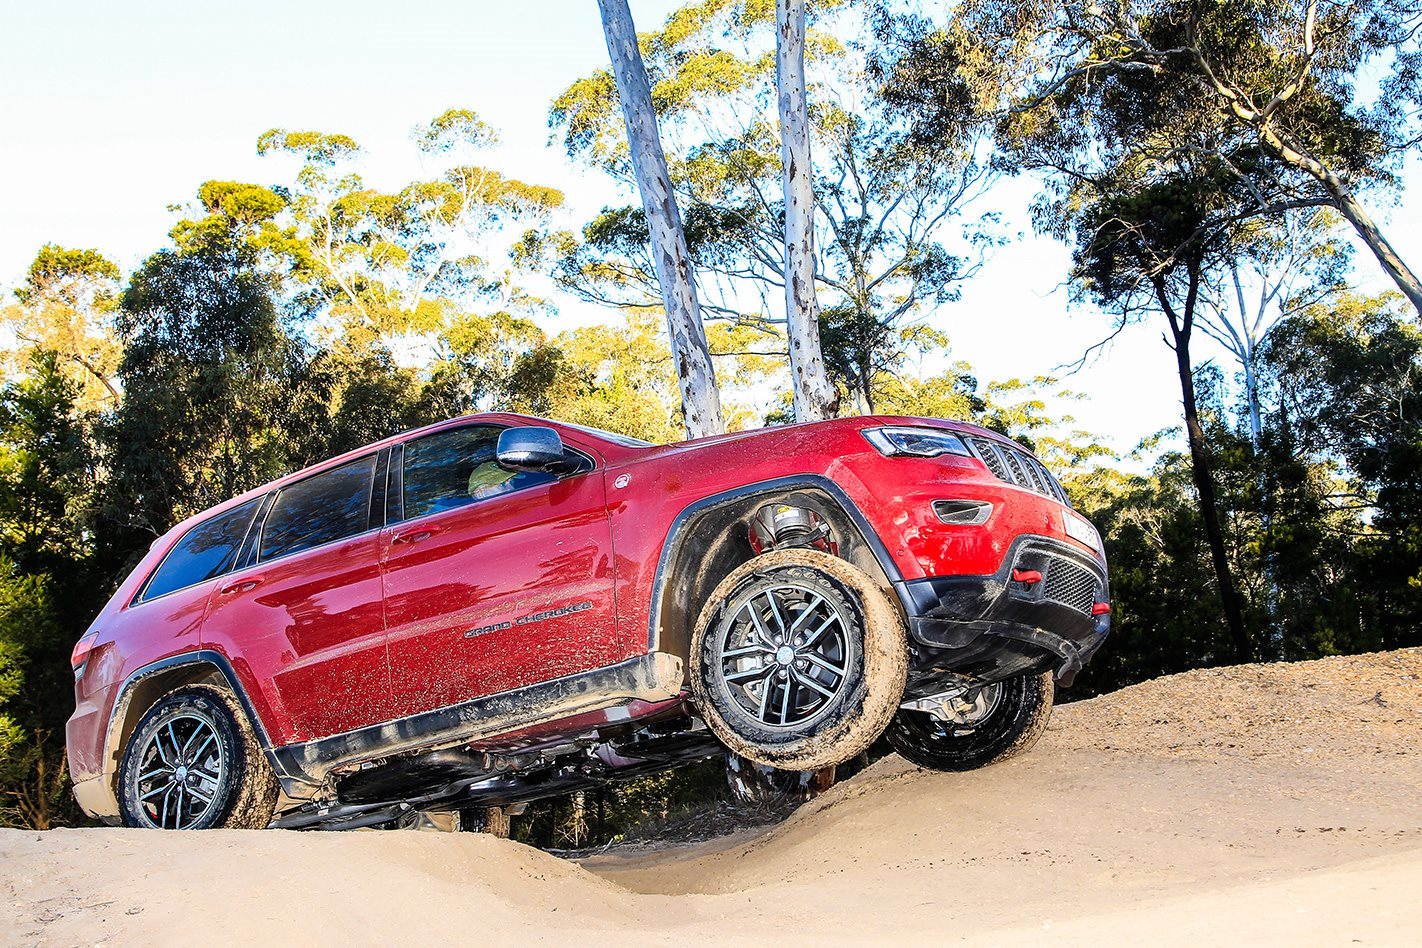 Jeep Grand Cherokee Trailhawk platform